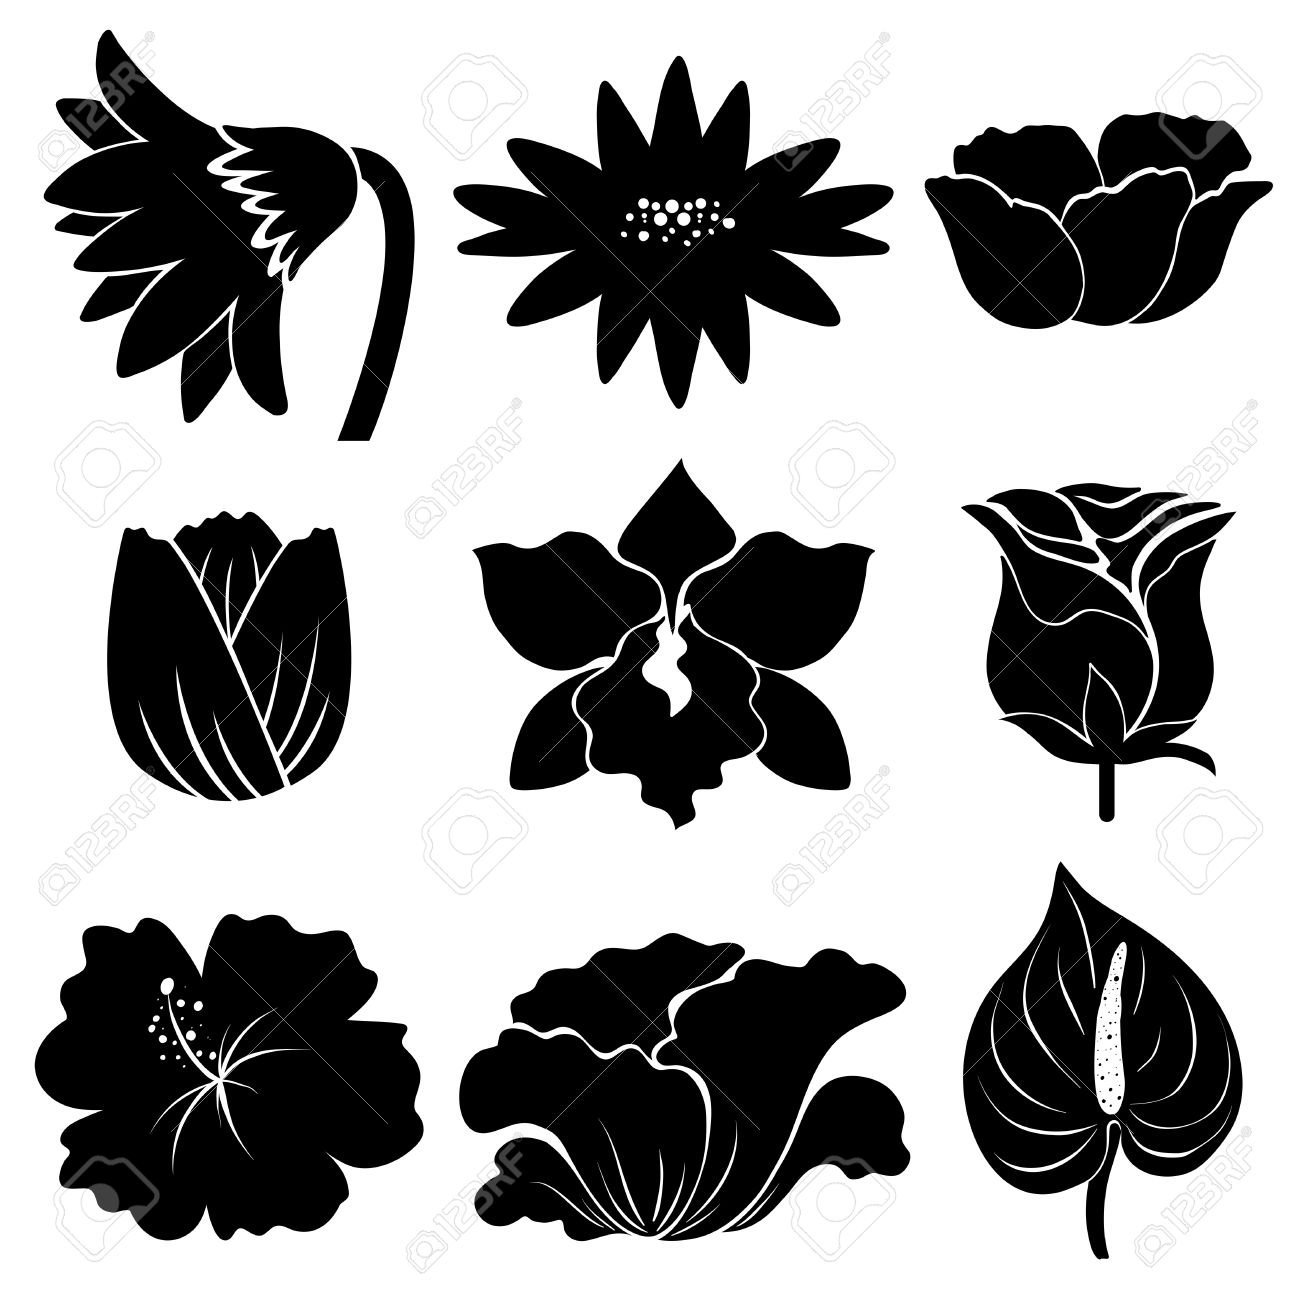 Sample Of Different Types Of Flowers In Black Color Royalty Free ...